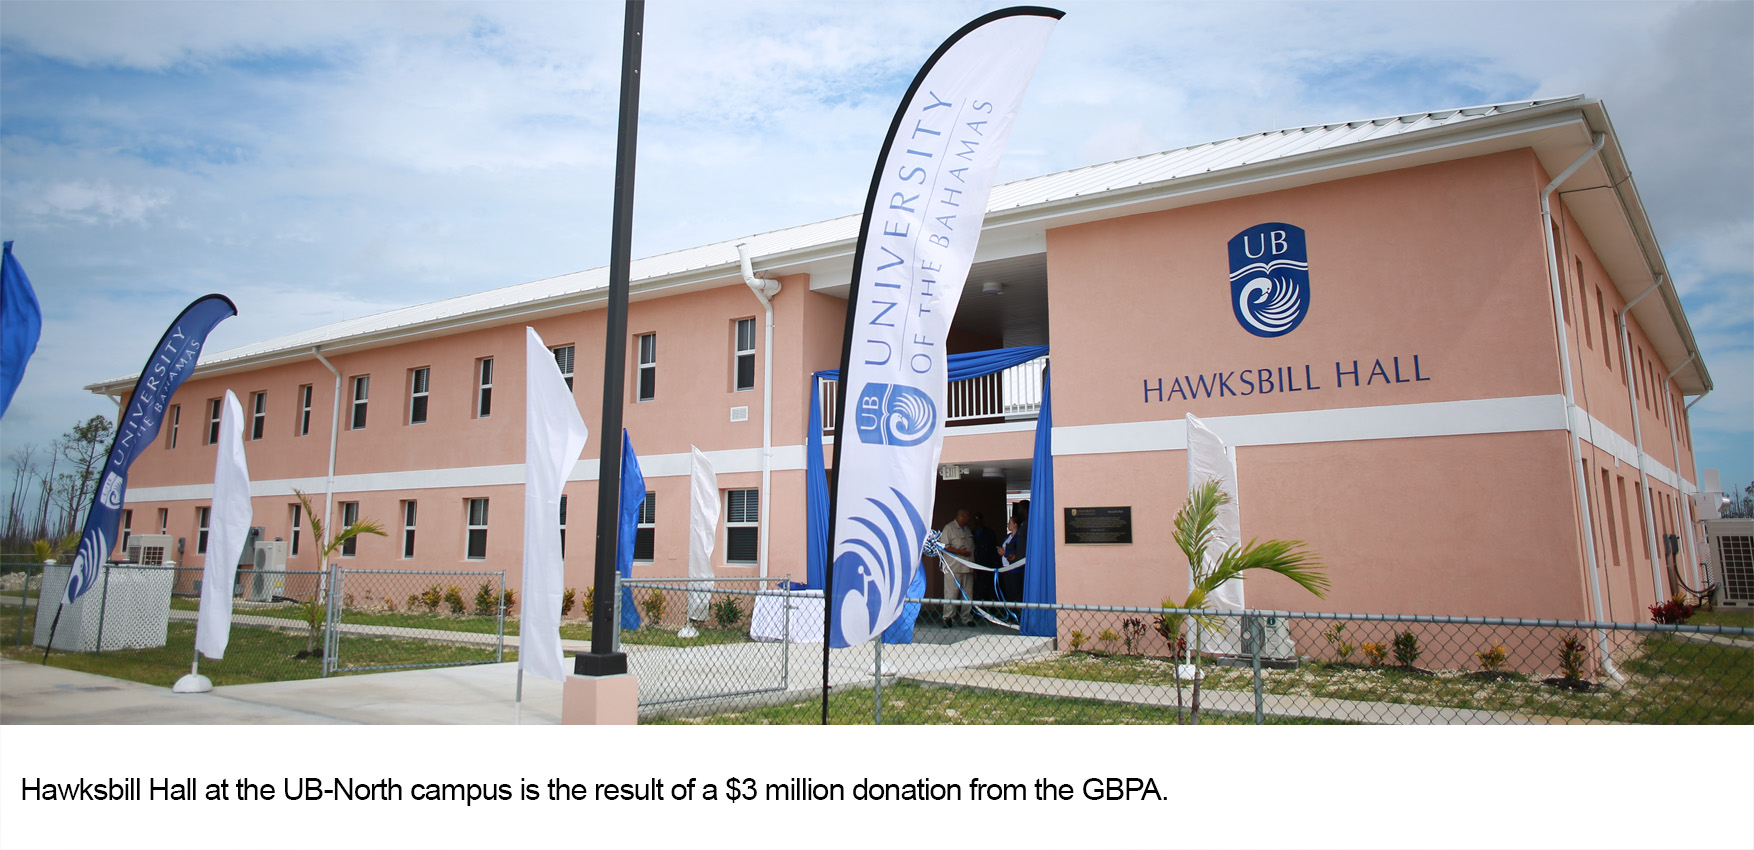 Hawksbill Hall Residential Facility at UB-North Officially Opened